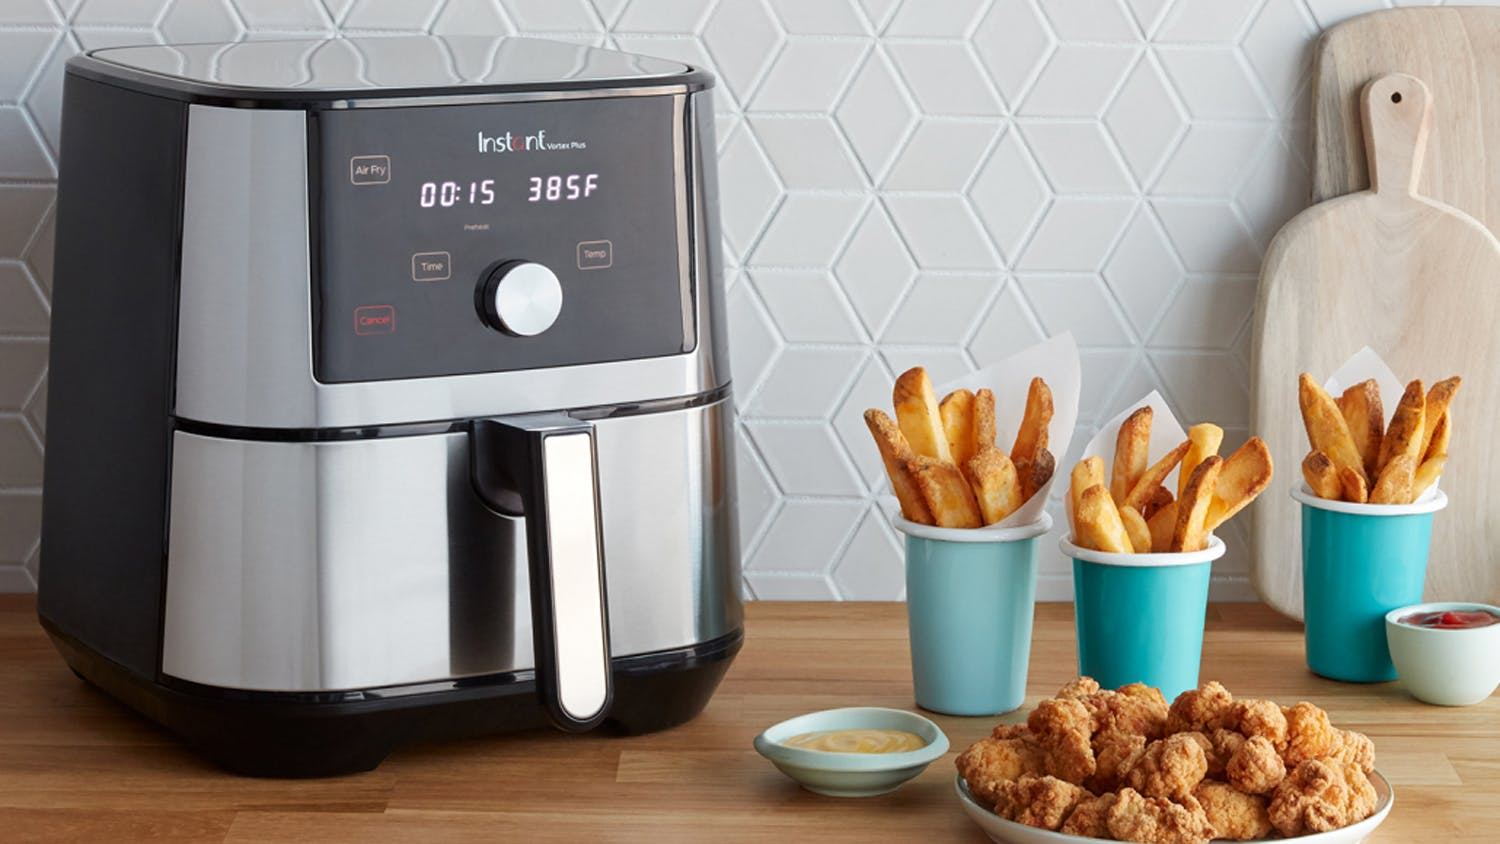 Instant Pot 5.7L Vortex Plus Air Fryer